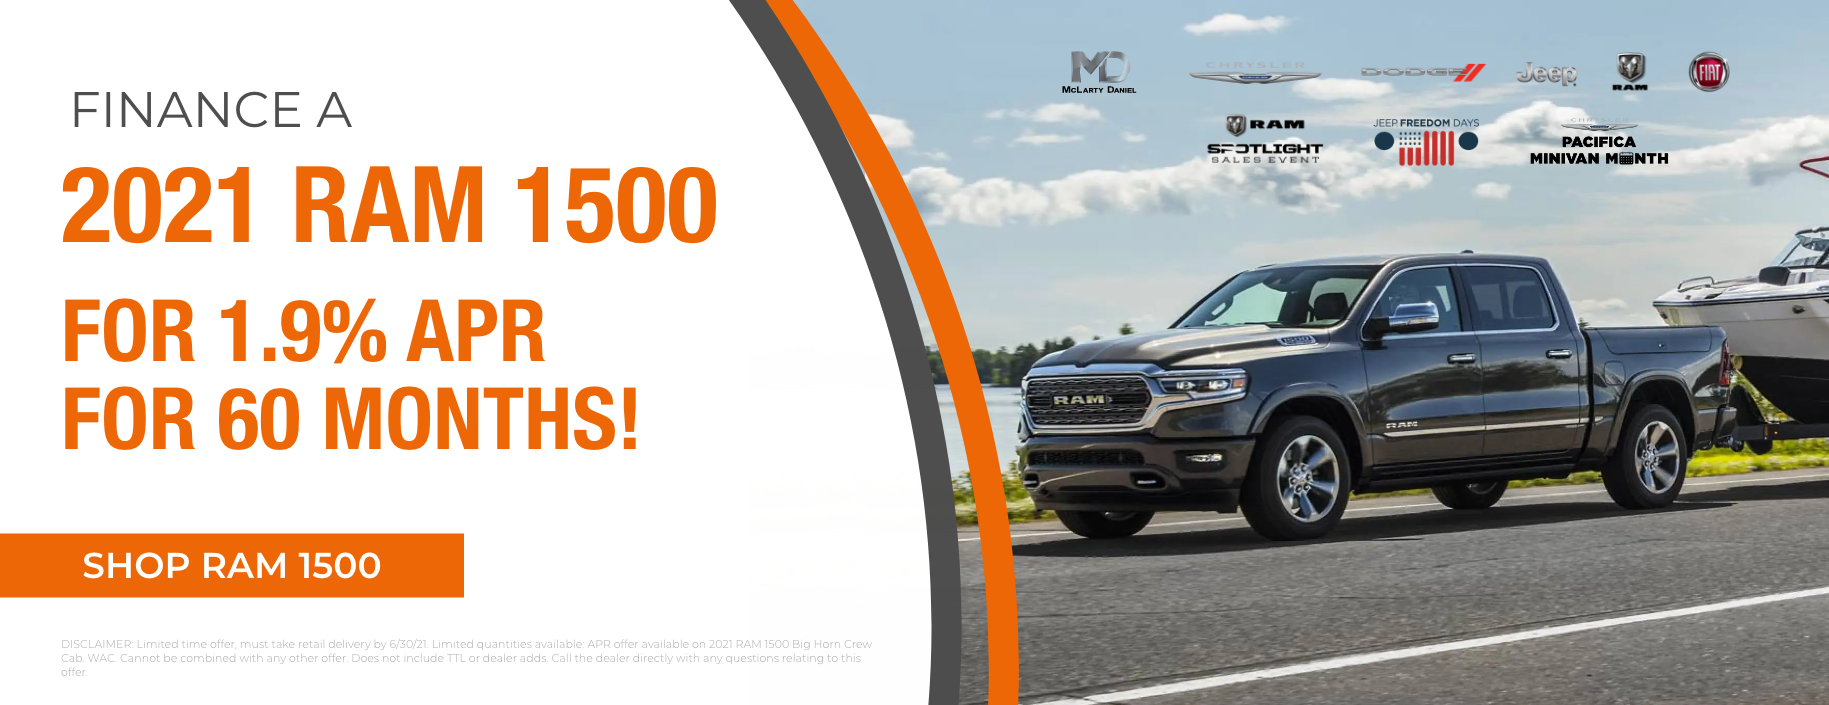 Finance a 2021 RAM 1500 for 1.9% APR for 60 months!